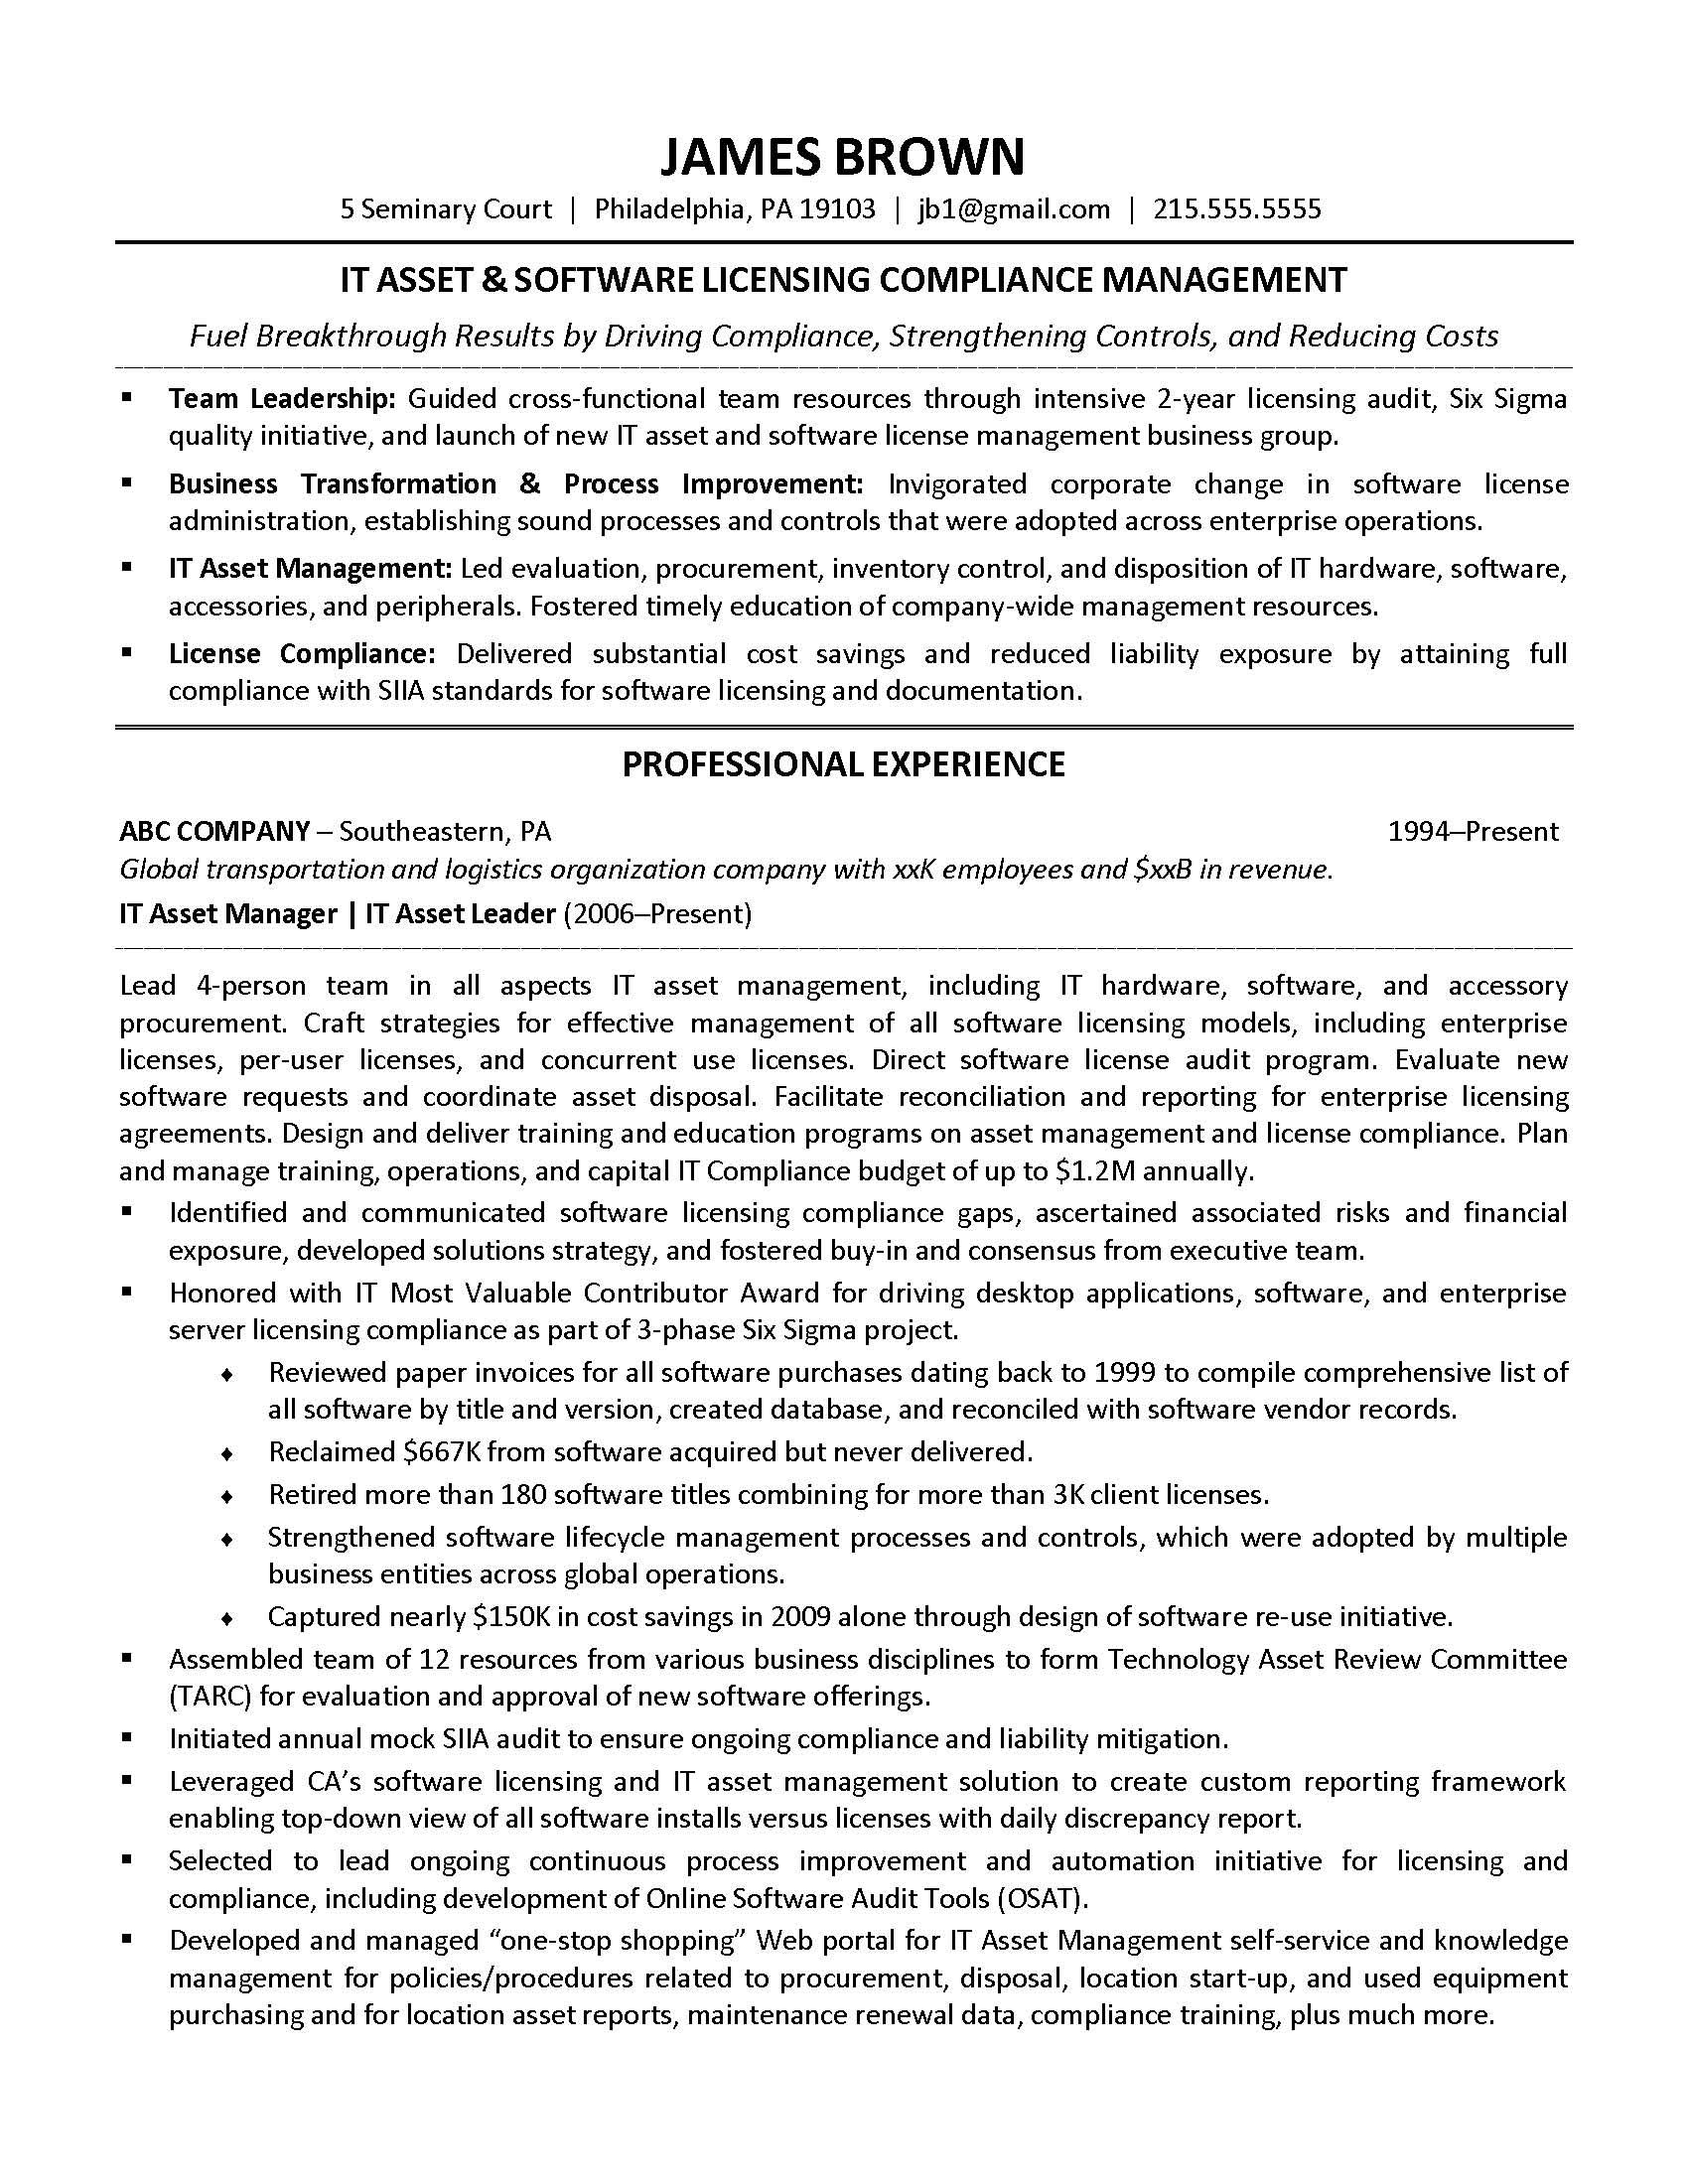 Resume Advice Custom CIO IT Resume Makeover Technical Resume Advice Pinterest